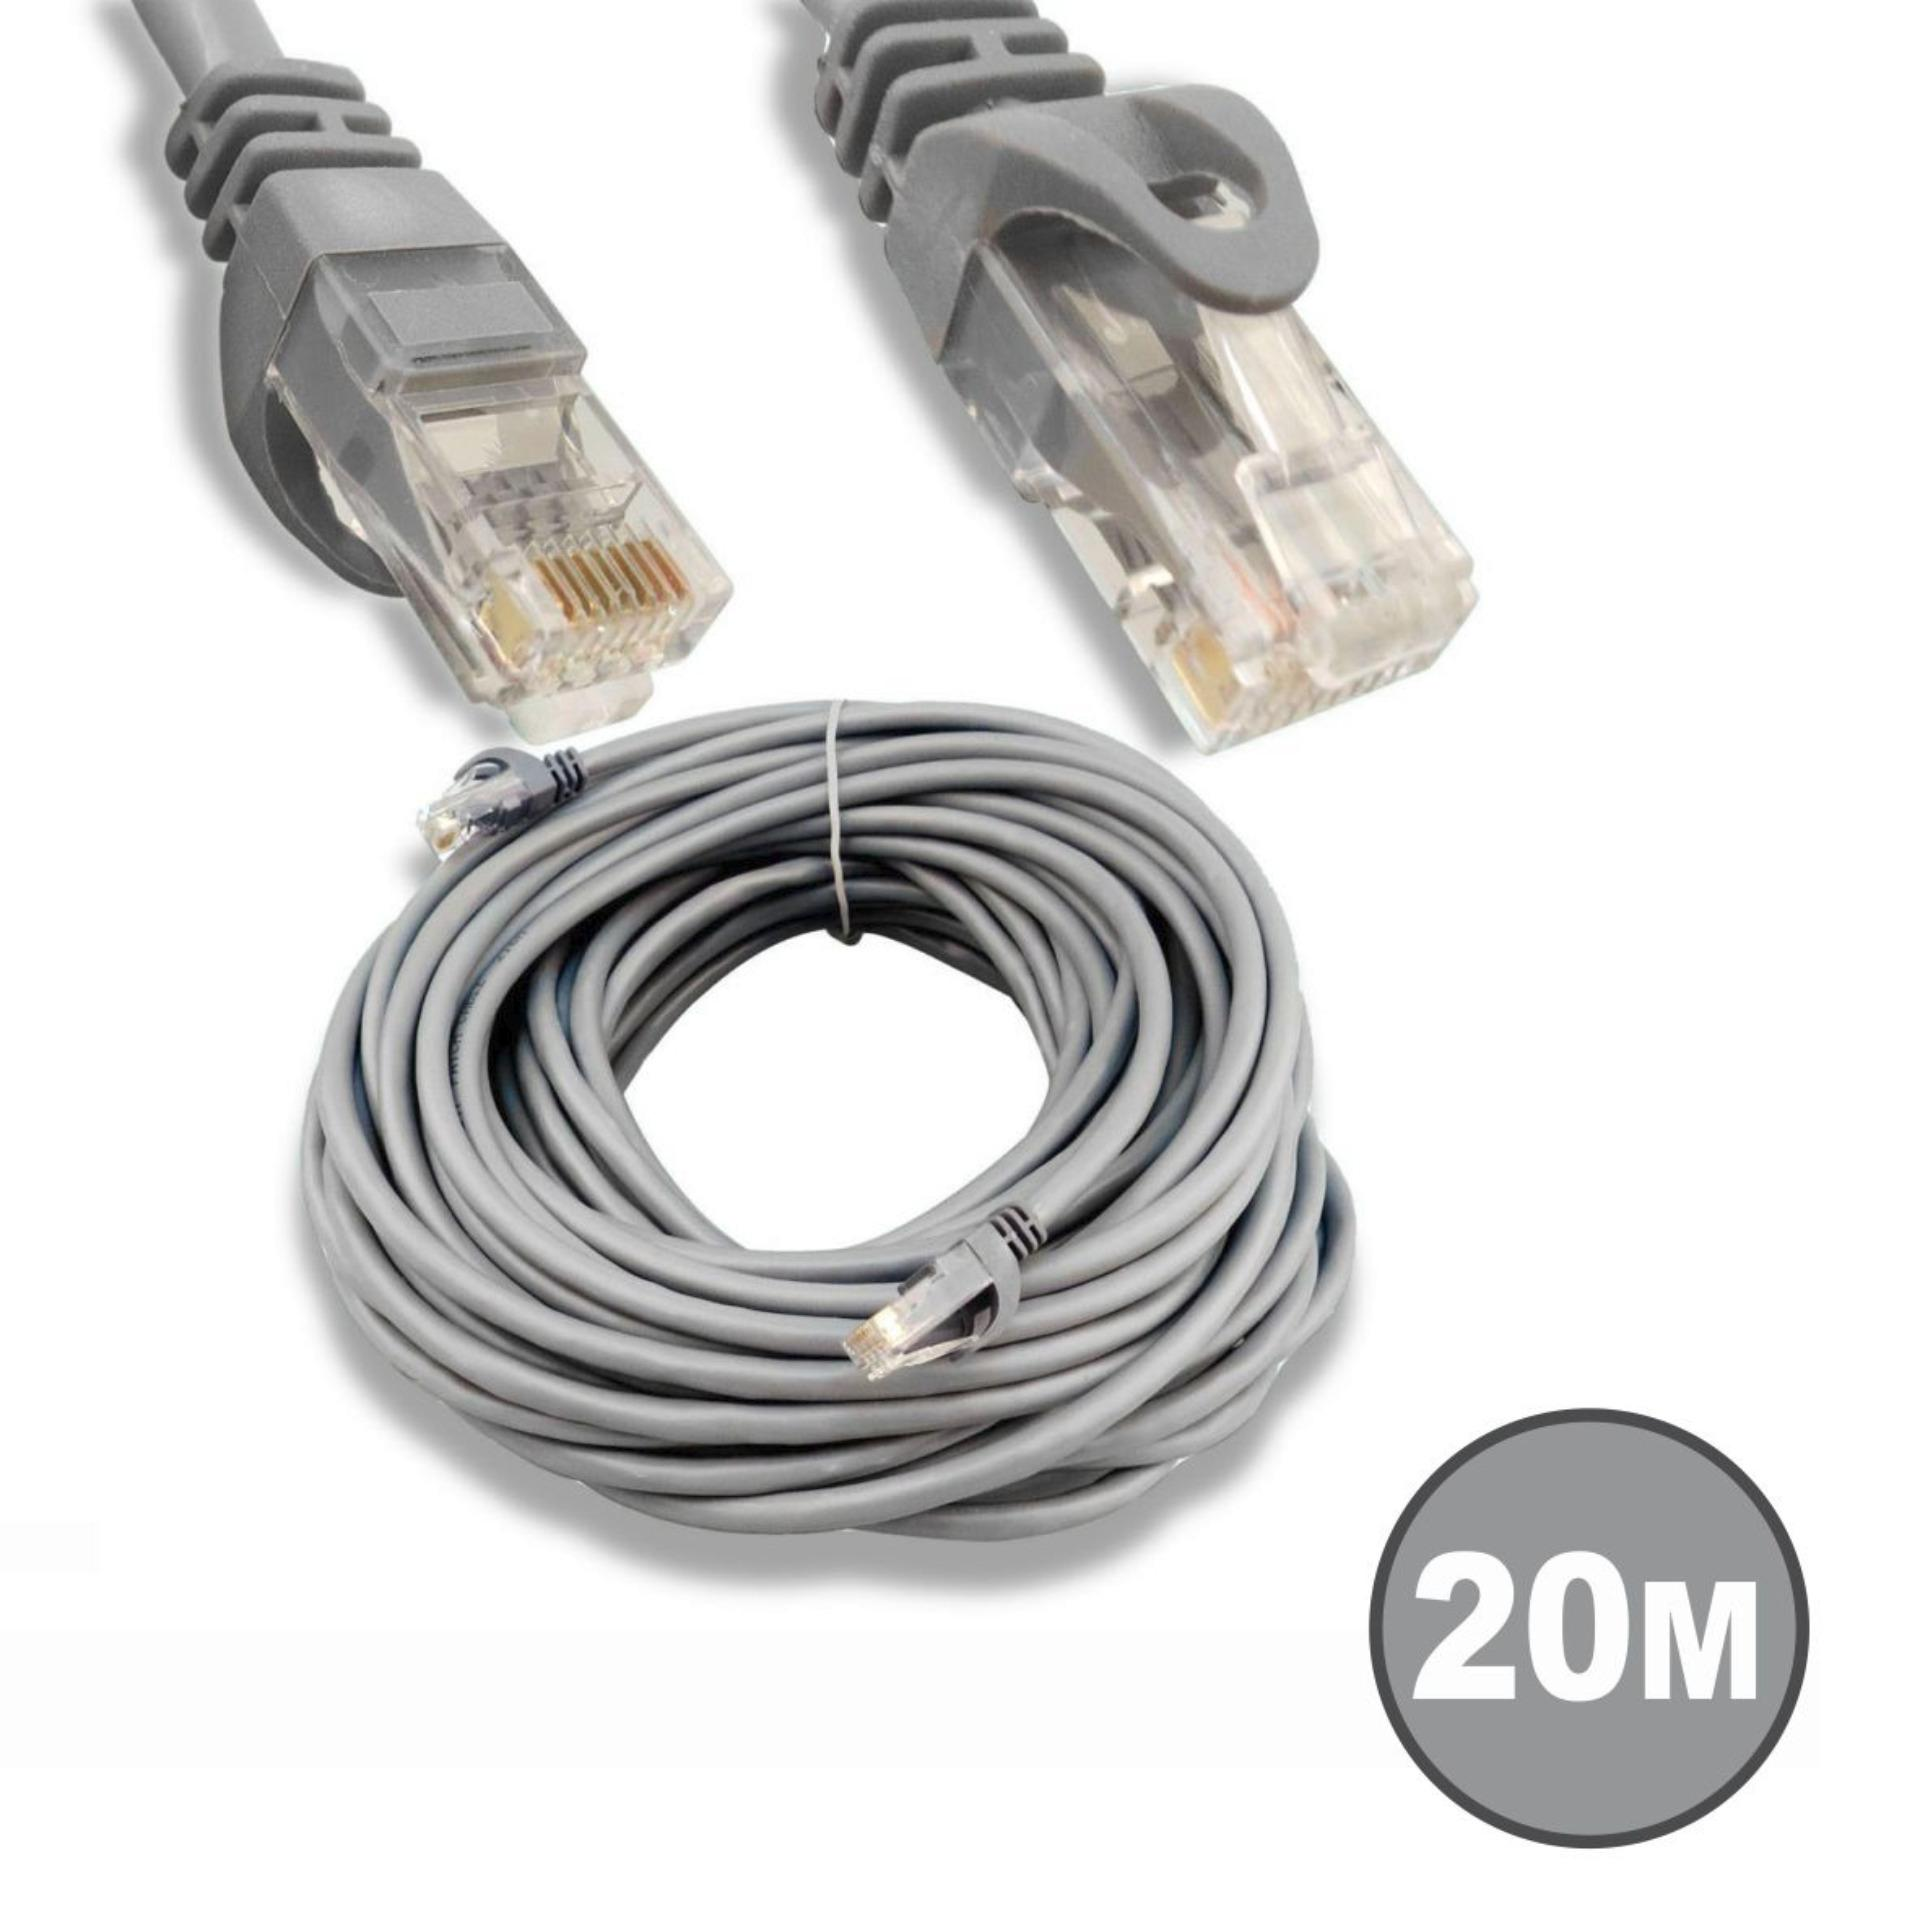 https://www.lazada.co.id/products/weitech-kabel-lan-20m-cat-5-kabel-utp-20-meter-pabrikan-high-quality-i141458276-s152557353.html